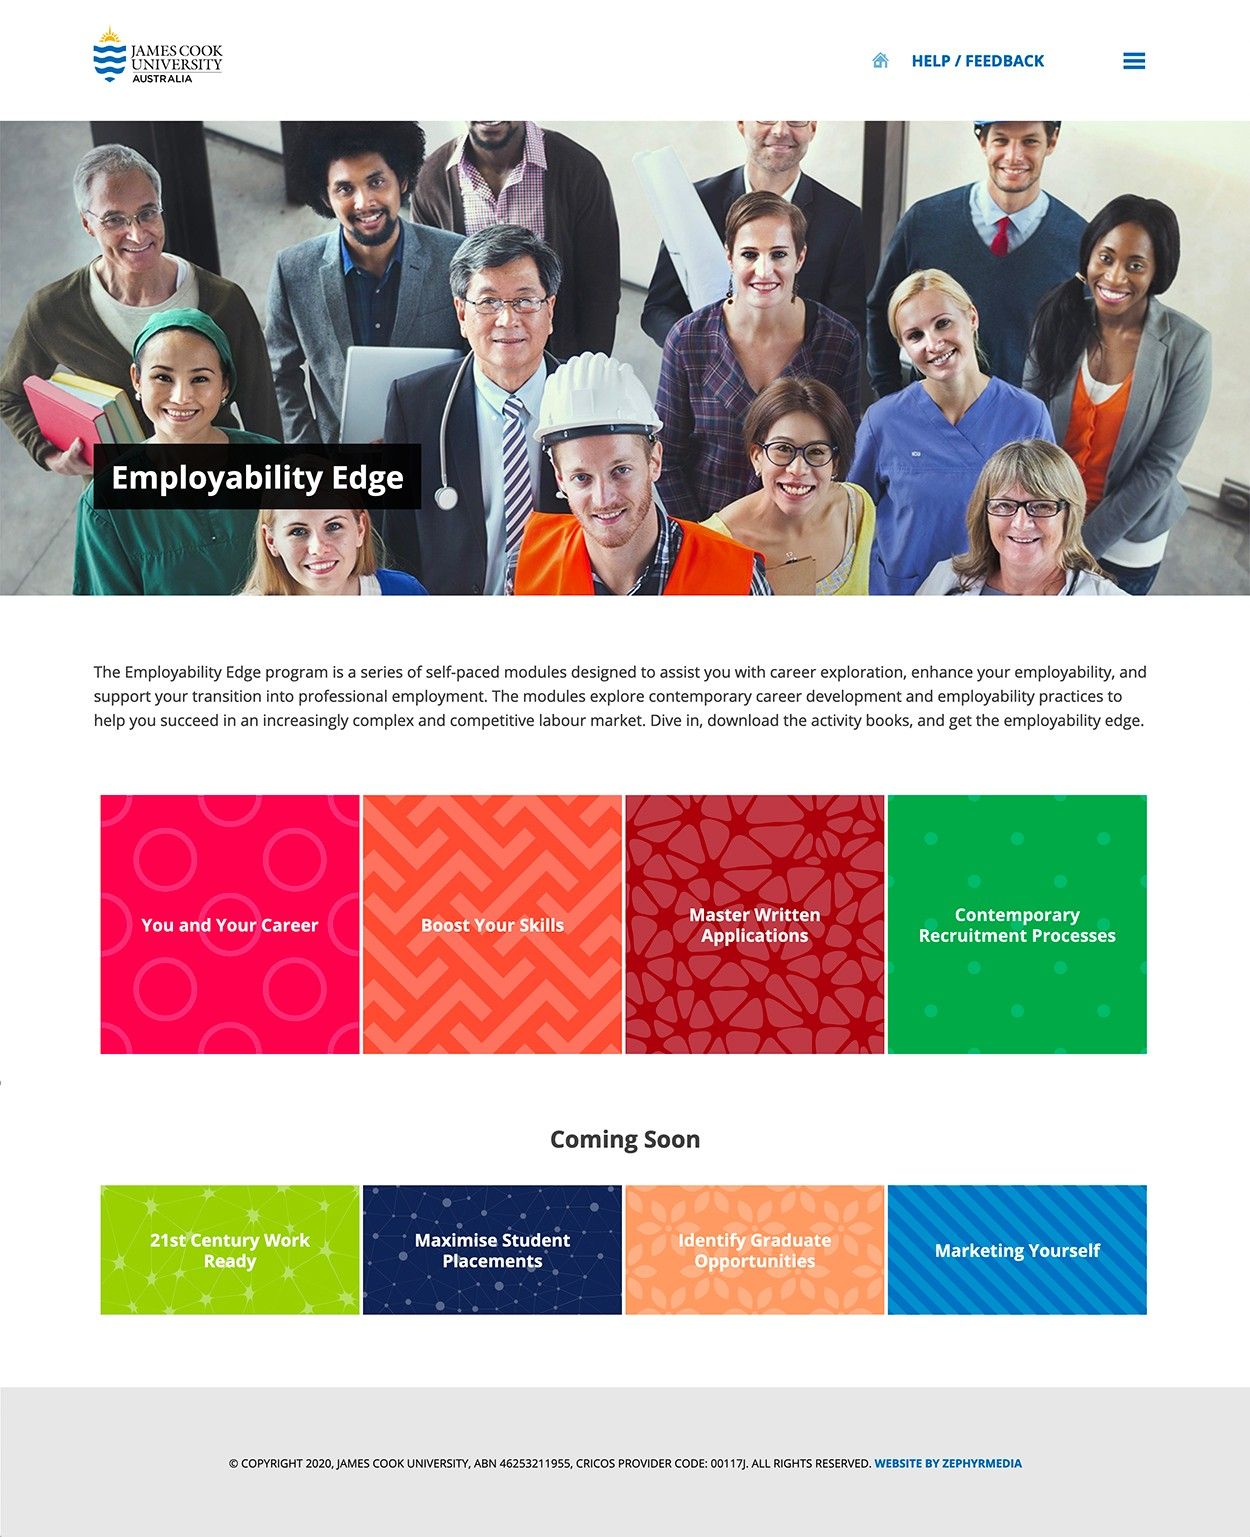 JCU Employability Edge home page layout